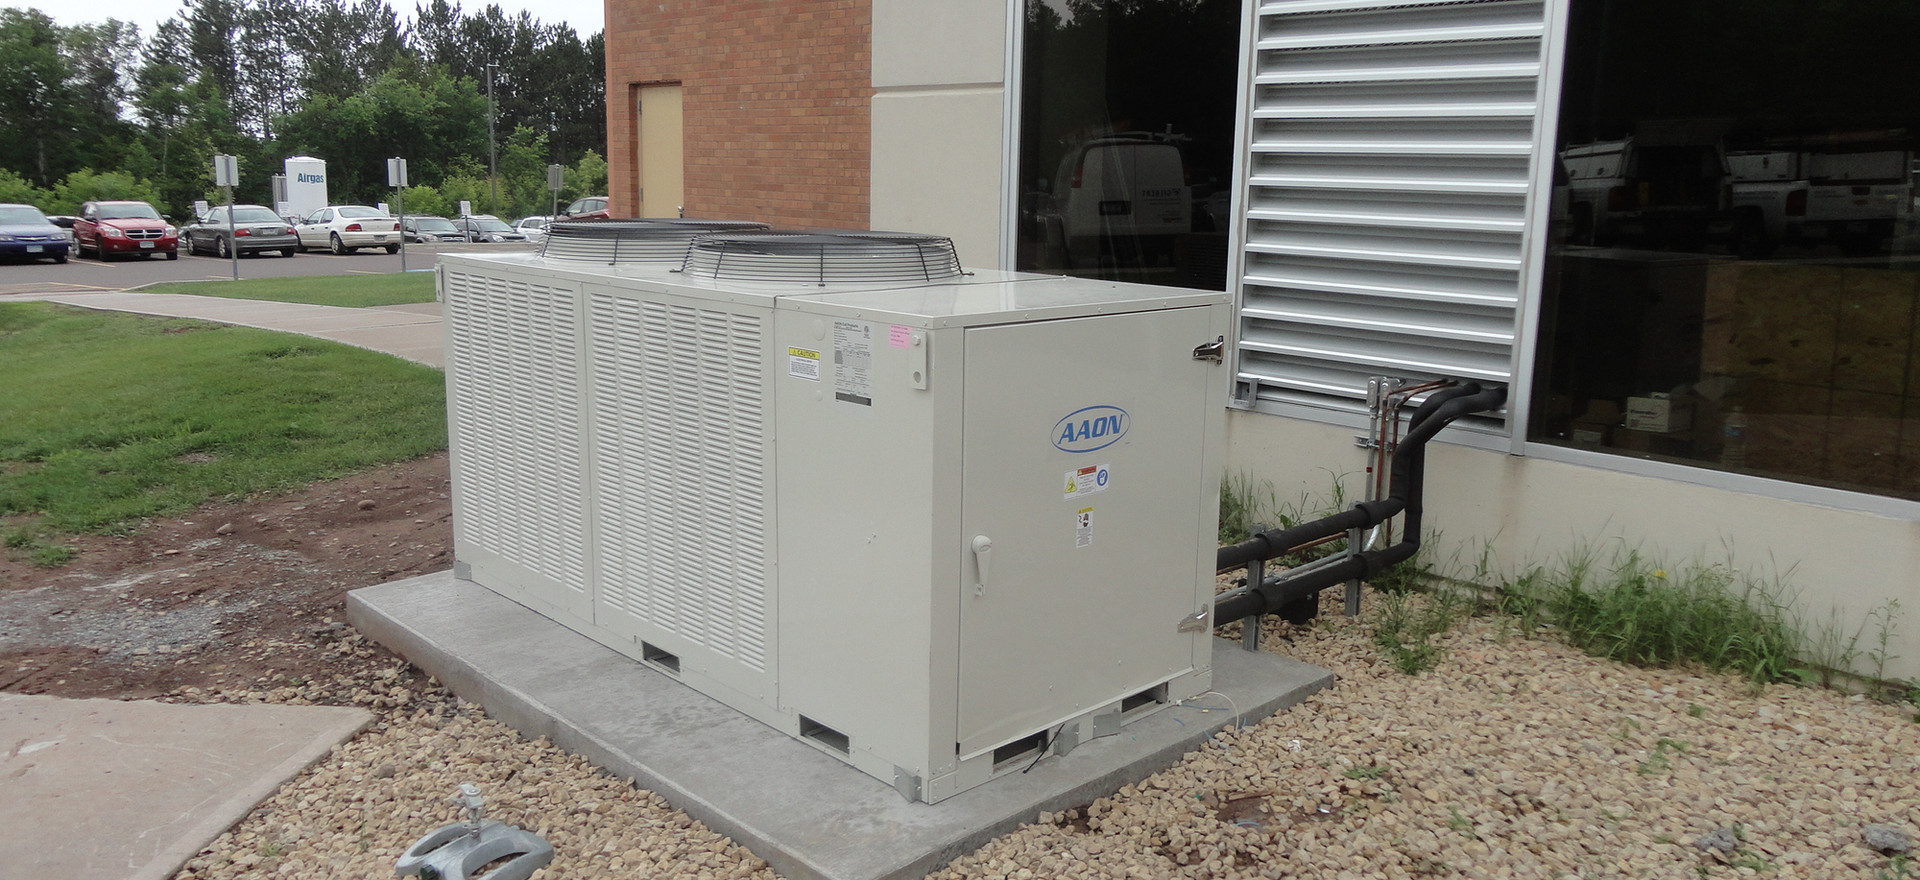 Air Cooled Condensing unit serving an indoor air handling unit